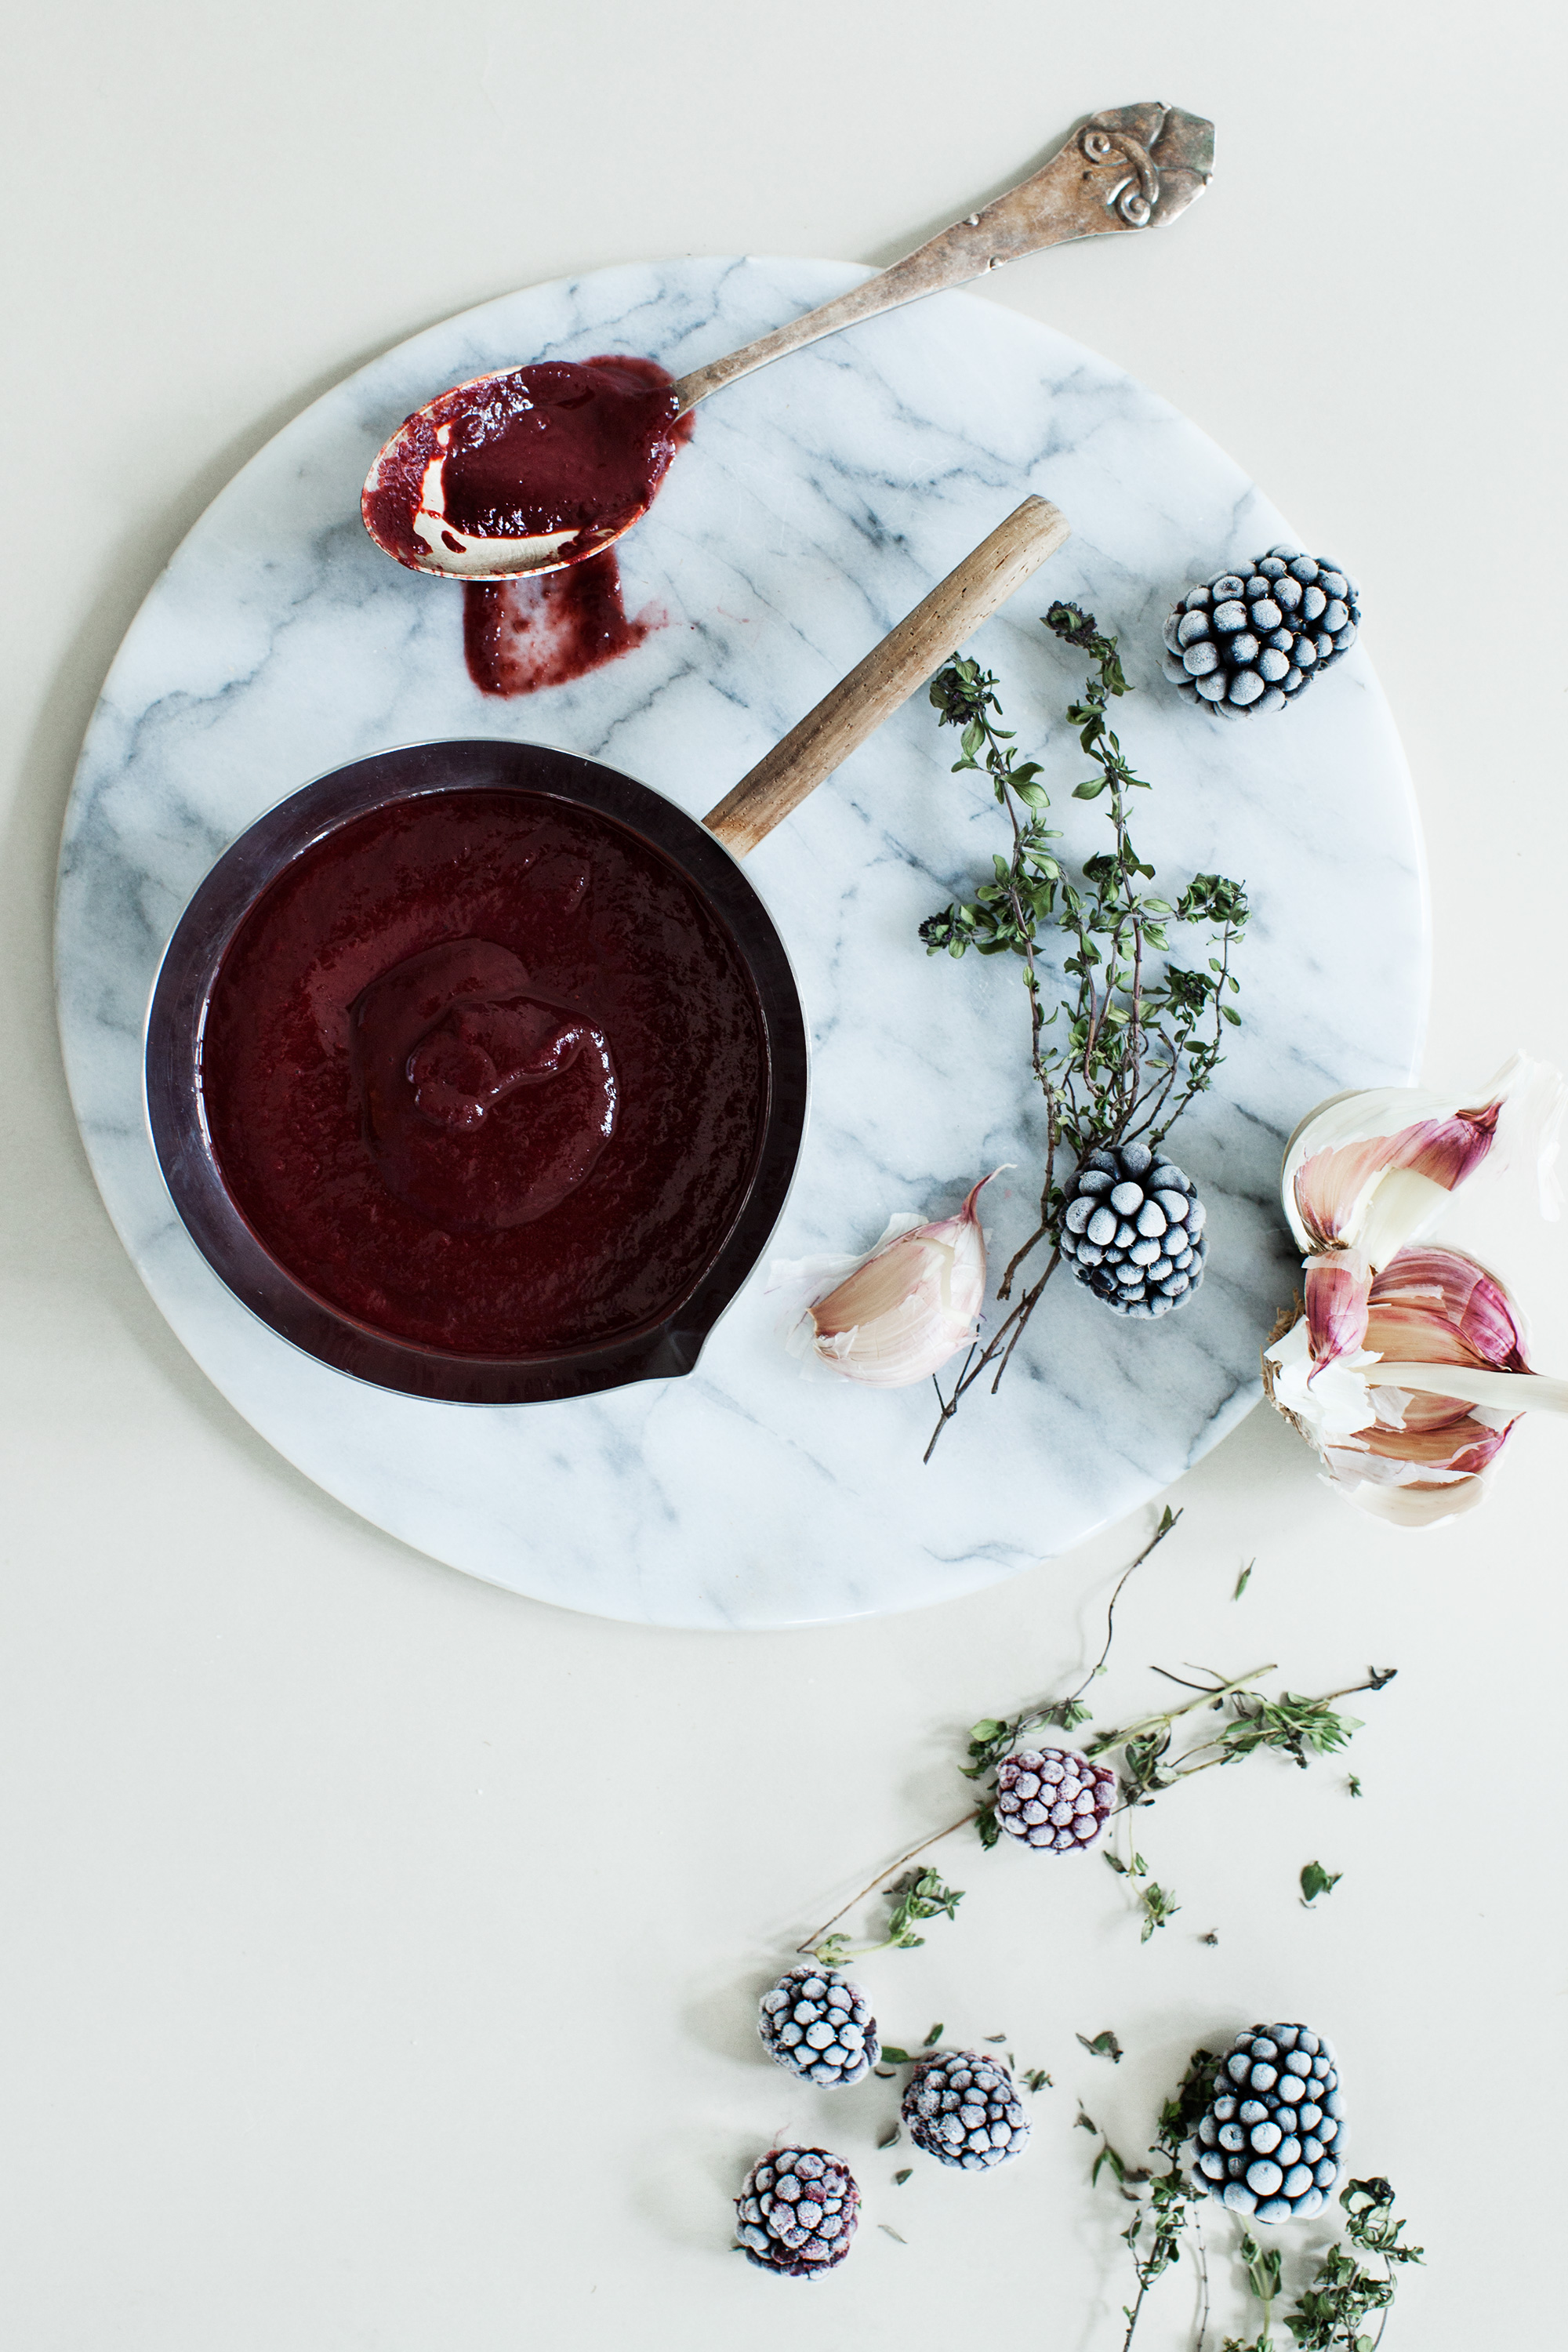 Blackberry BBQ Sauce for Spare Ribs #modernwifestyle #foodphotography